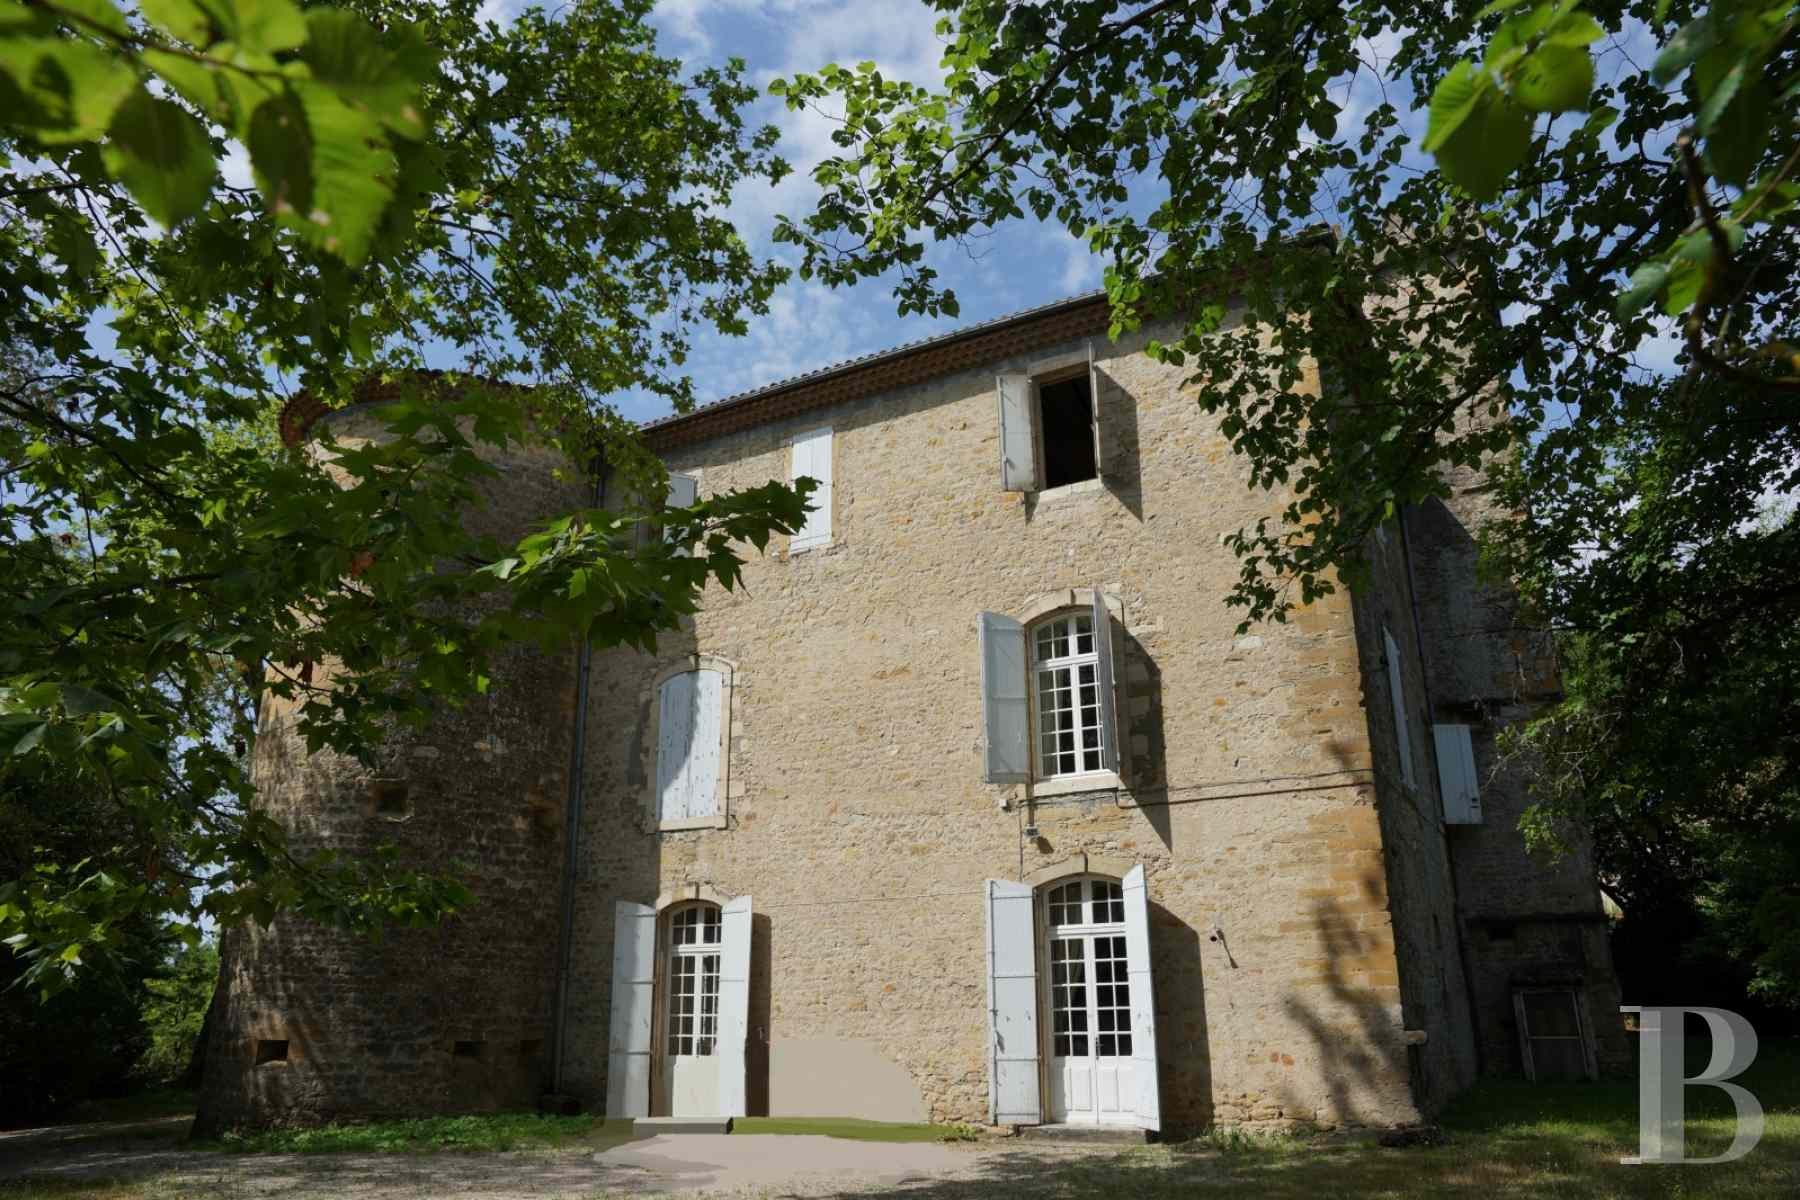 chateaux for sale France languedoc roussillon 17th century - 4 zoom